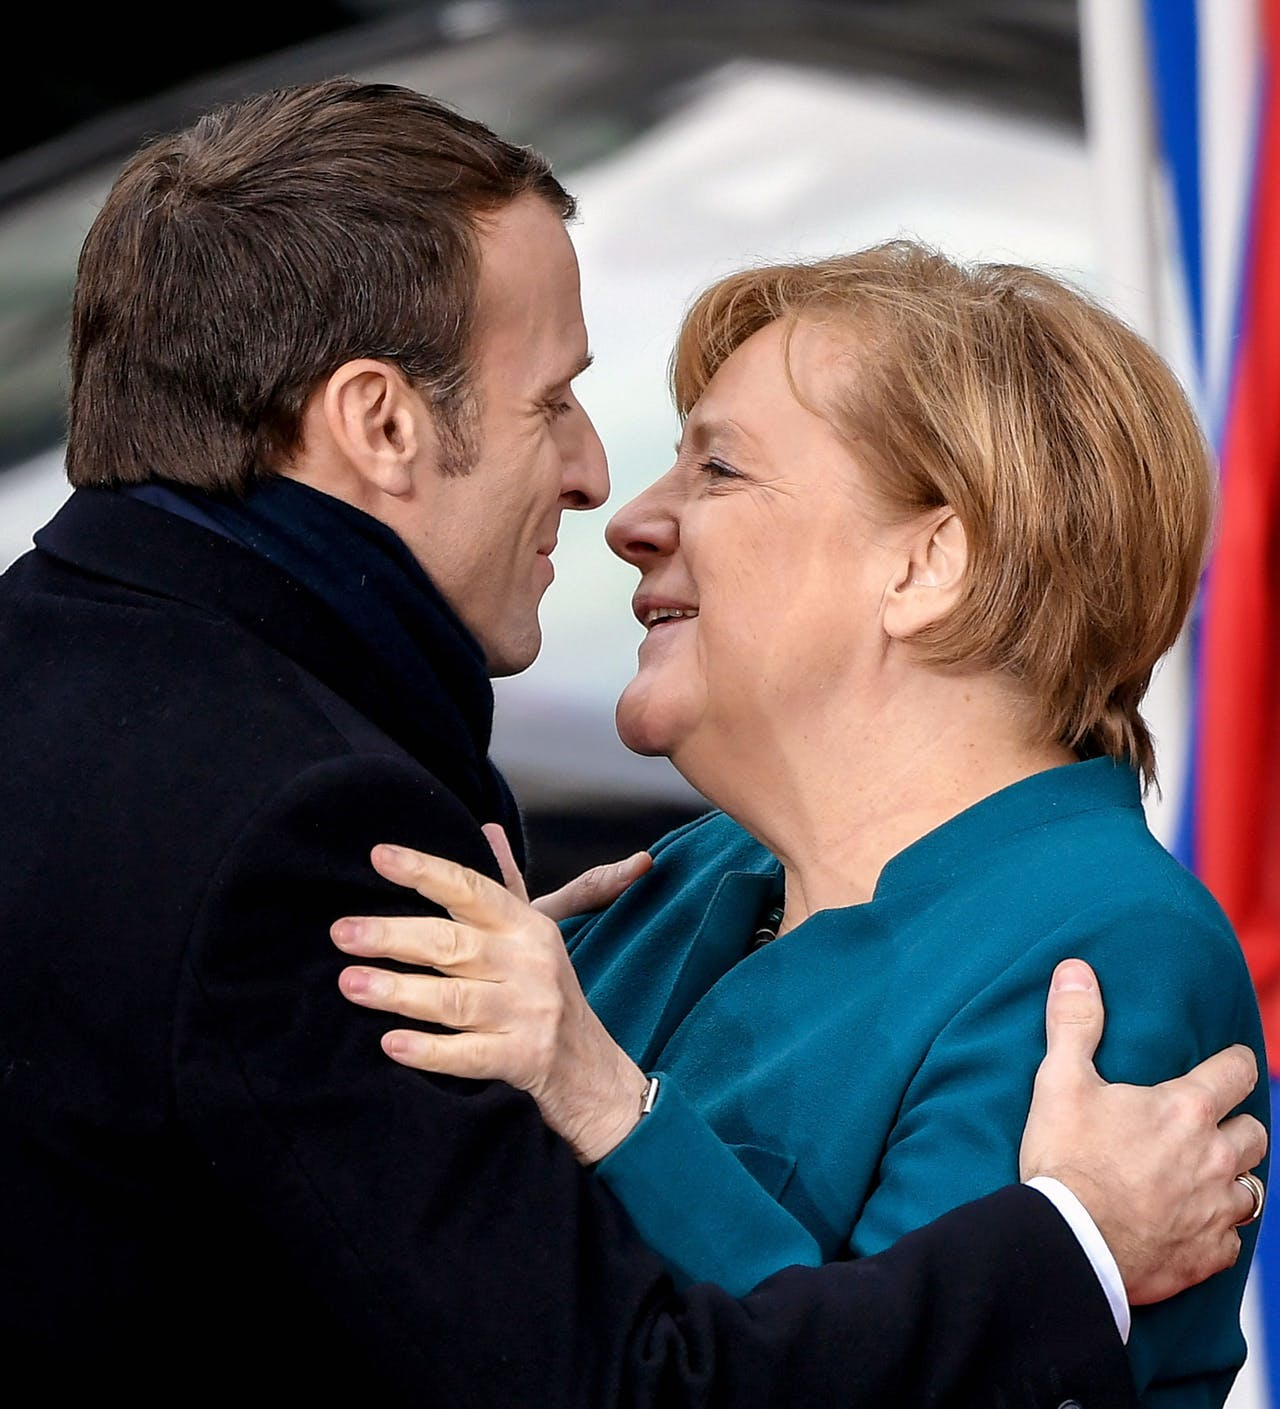 2019-01-22 10:45:59 epa07309228 German Chancellor Angela Merkel (R) and French President Emmanuel Macron (L) greet each other as they arrive for the signing of a new Franco-German friendship treaty in Aachen, Germany, 22 January 2019. President Macron and Chancellor Merkel signed a new friendship treaty, intended to supplement the 1963 Elysee Treaty, pledging to provide deeper economic and defense ties and commitment to the EU. EPA/SASCHA STEINBACH